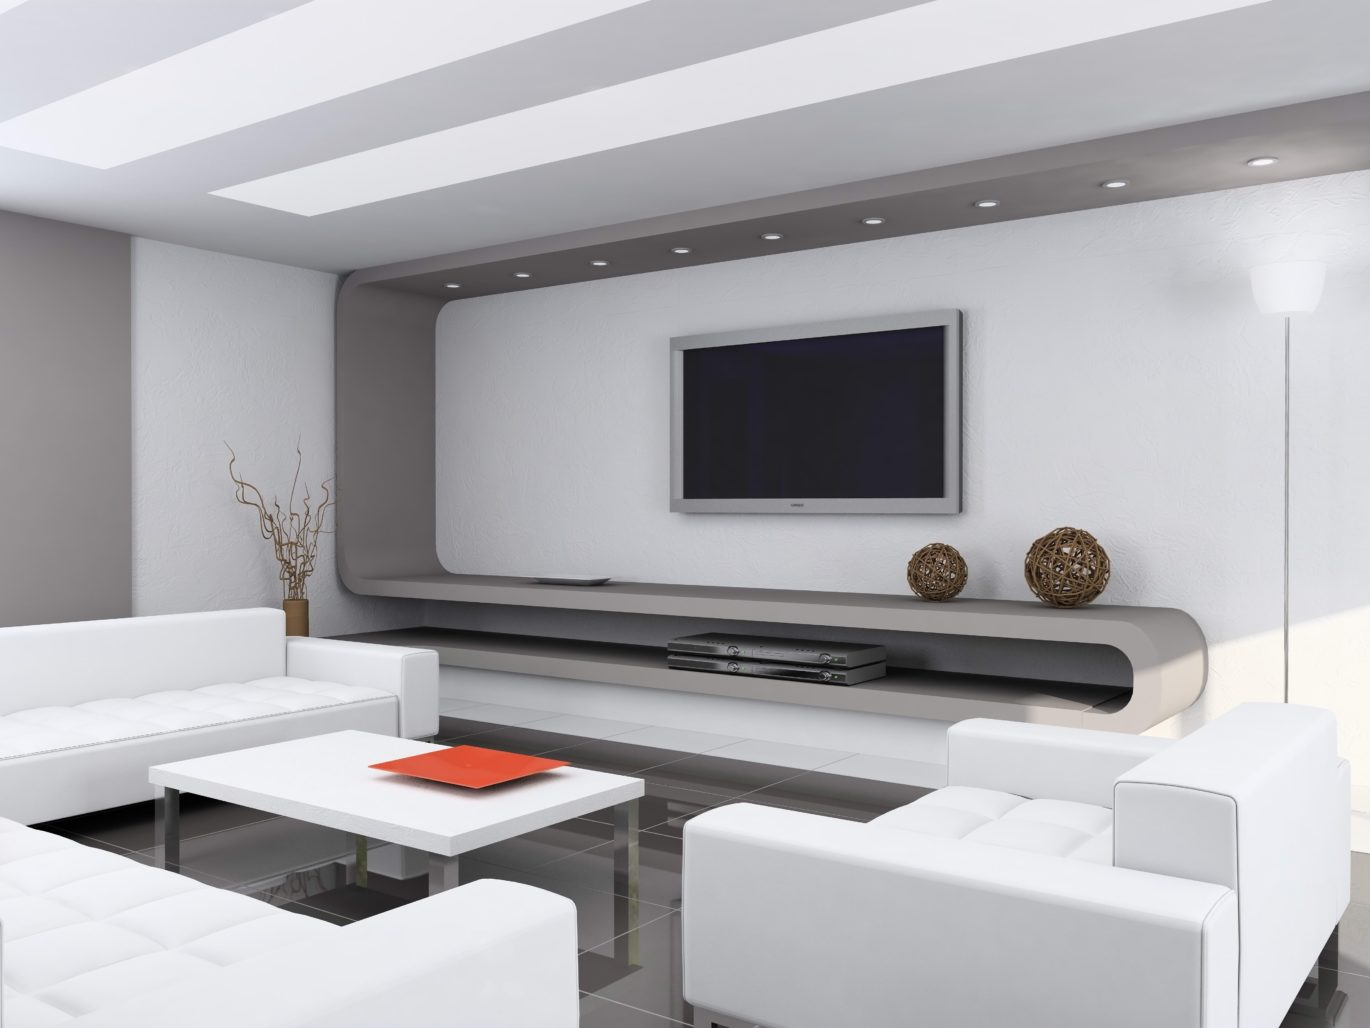 Basic Home Theater Furniture Such As Home Theater Chairs And Television  Cabinet May Be Good For Your Home Theater Set Up. Other Furniture That Will  Enhance ...